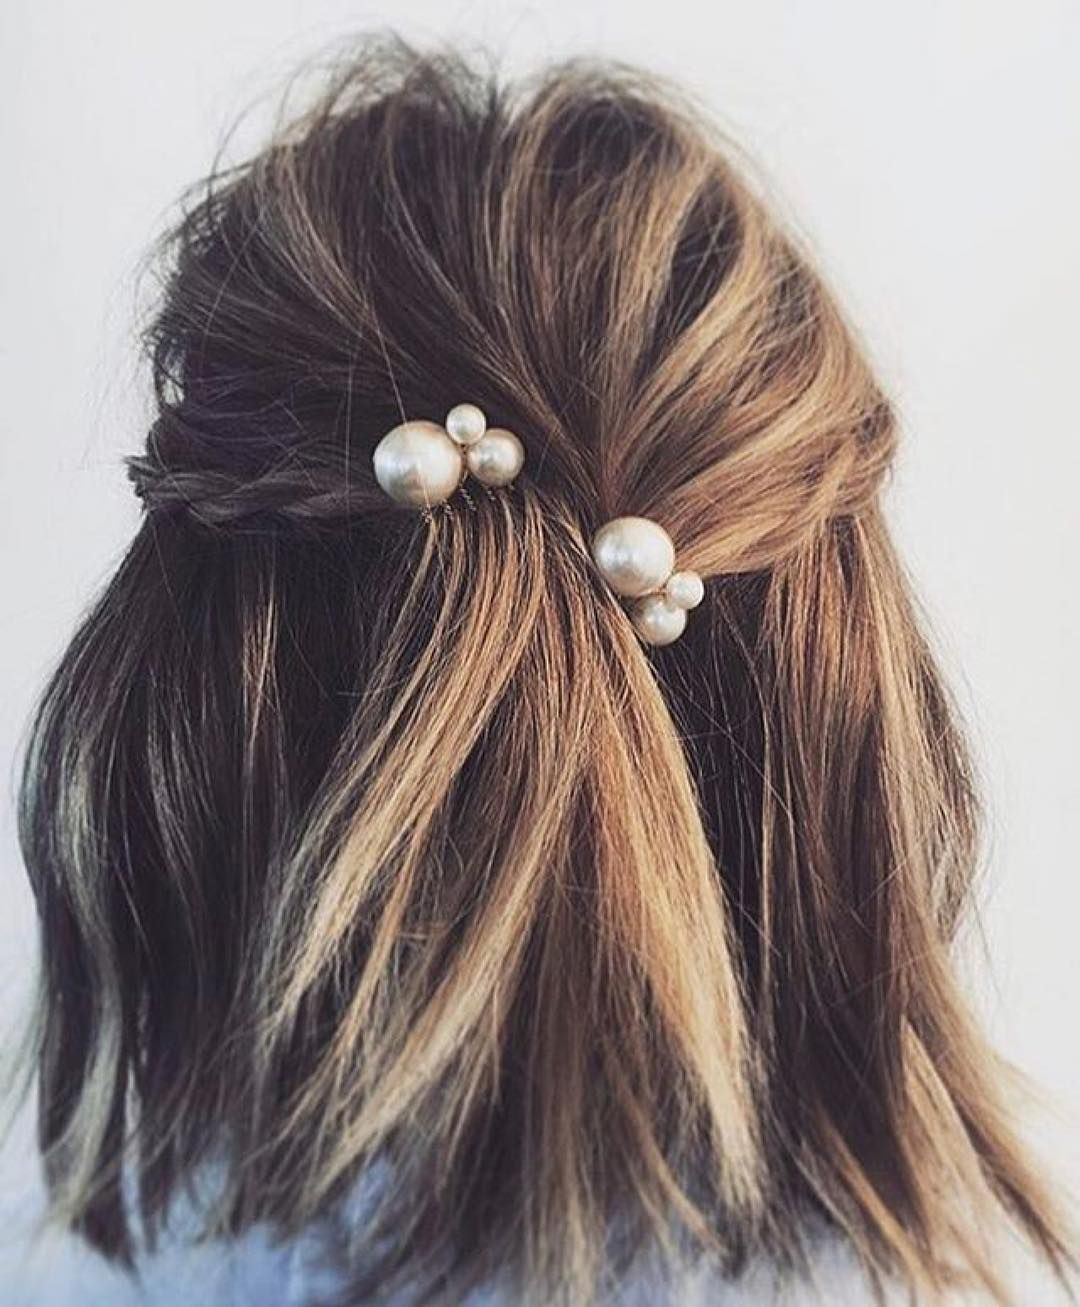 Chloalawrence hairstyle pinterest hair style make up and hair